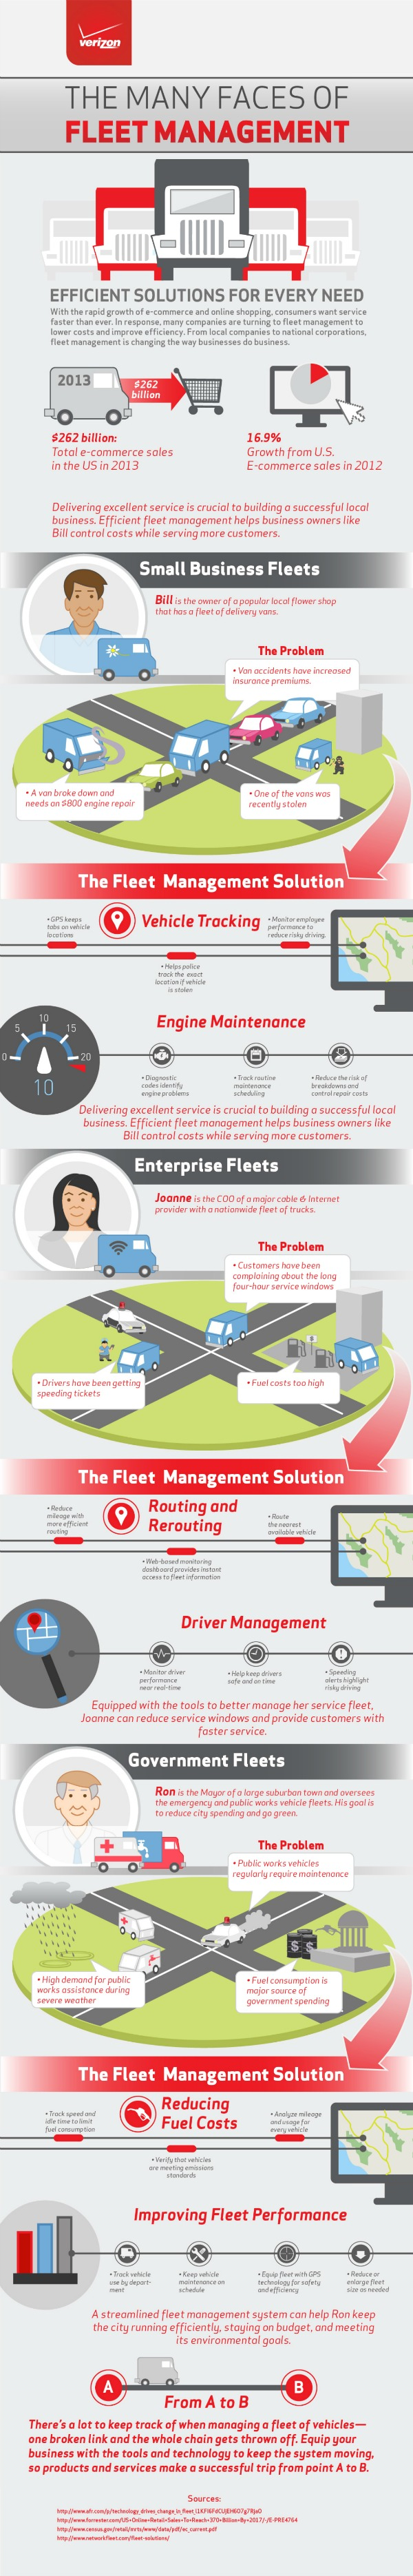 The Many Faces of Fleet Management